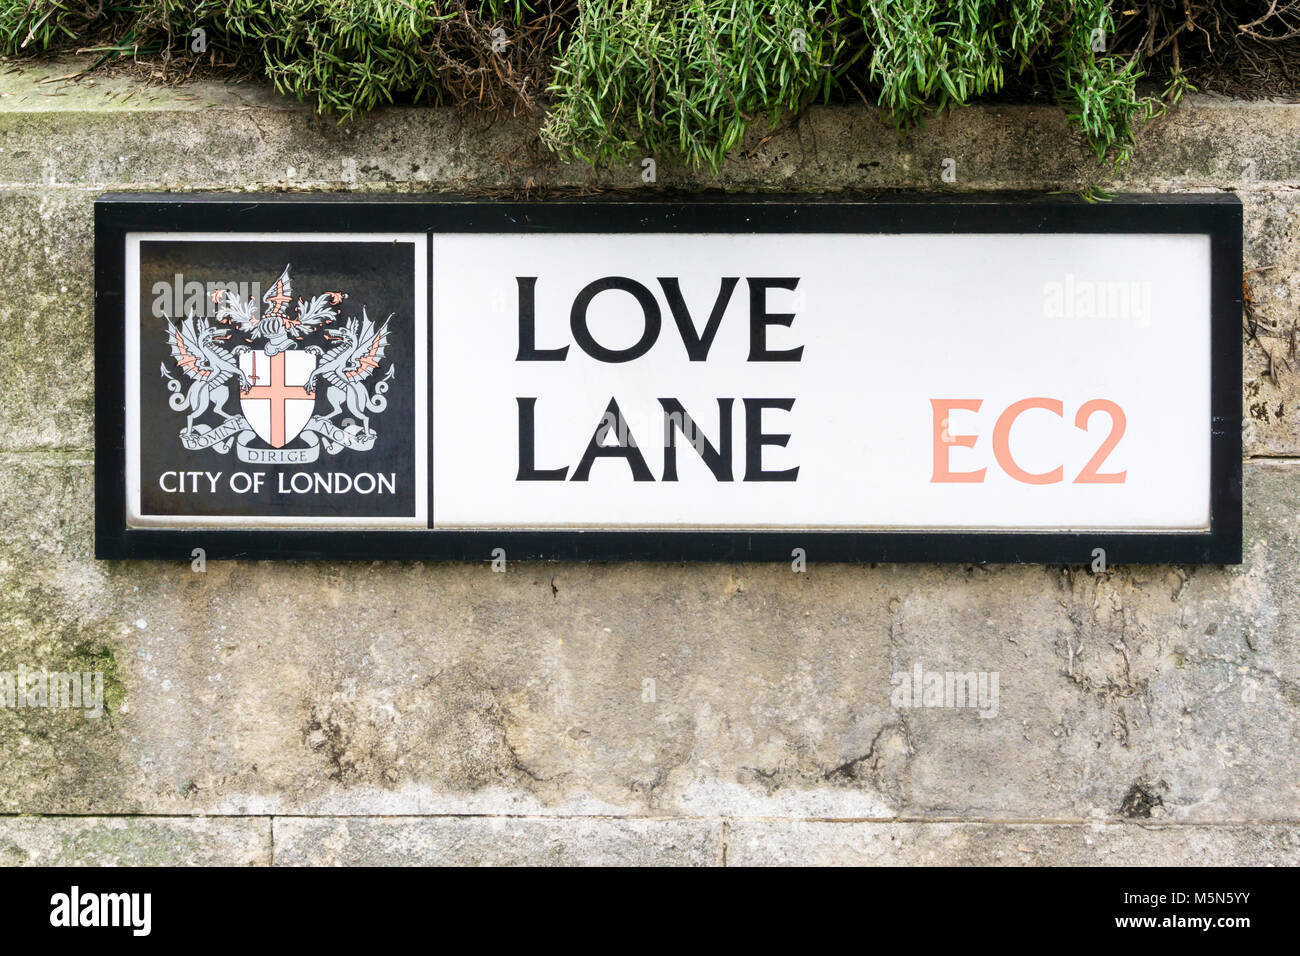 Street sign for Love Lane in the City of London - Stock Image